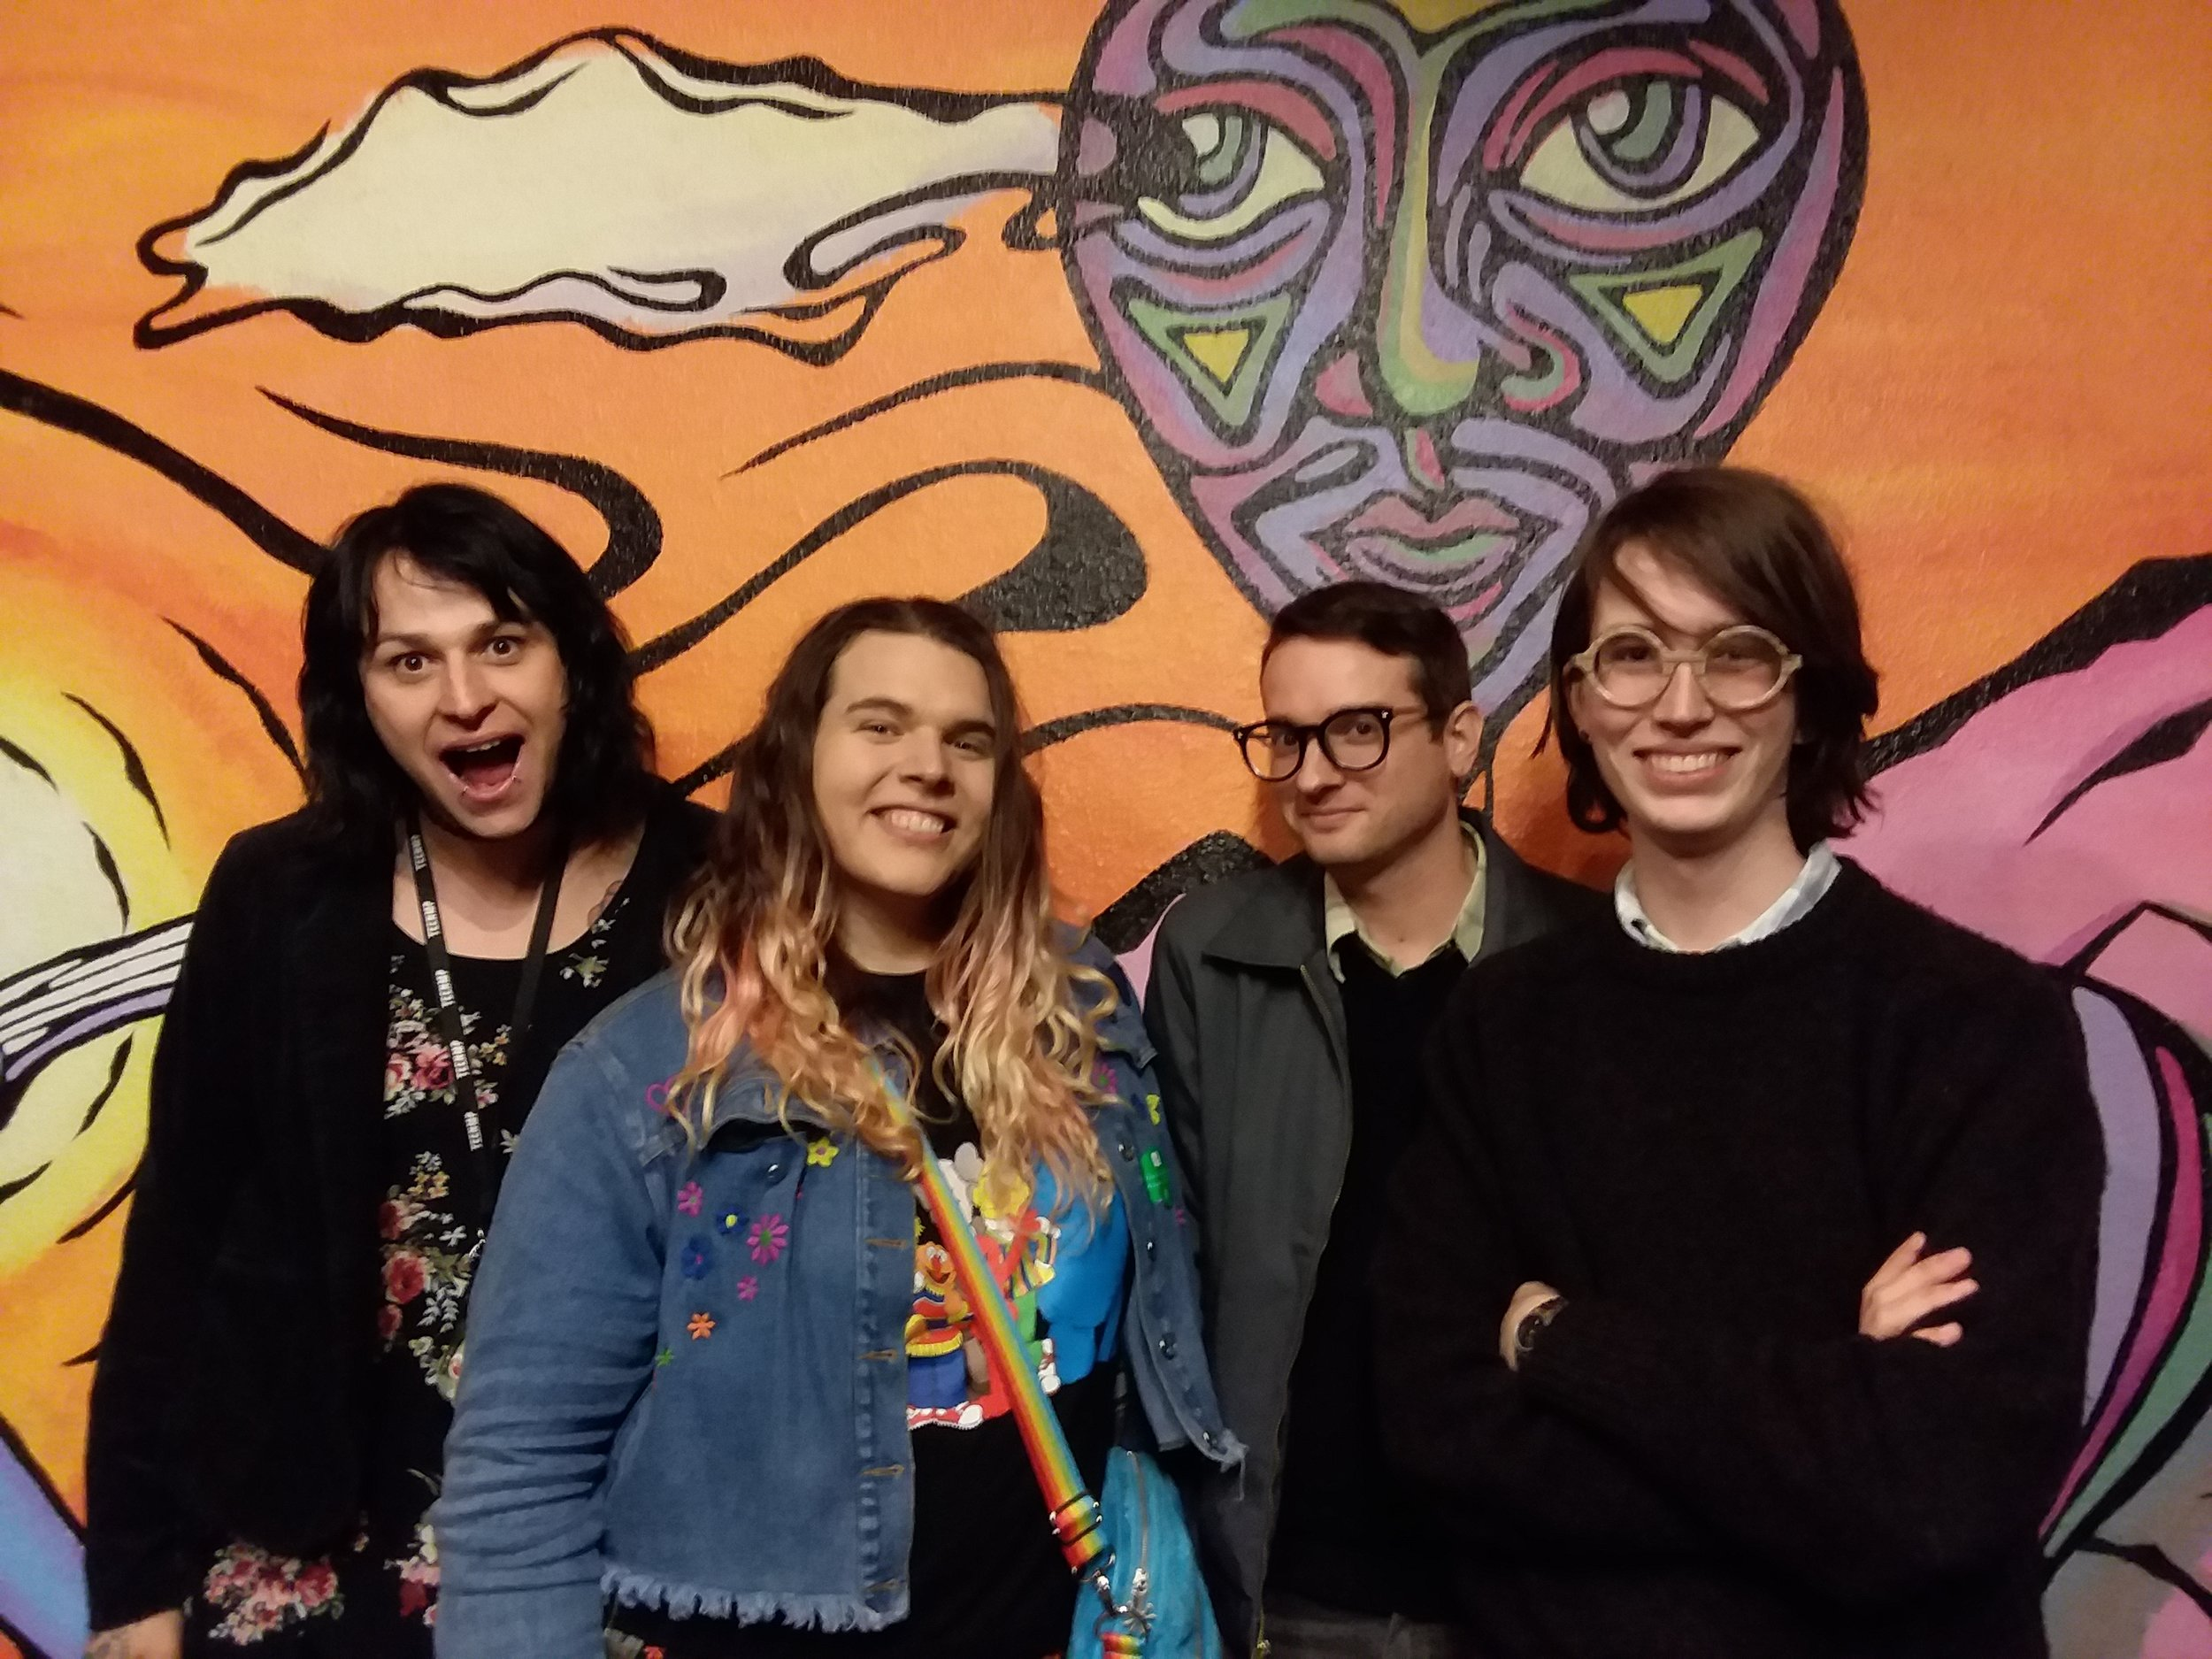 December 12, 2018 - Corpus Arts was excited and proud to host a night with Canadian comic book artist and activist Sophie Labelle, author of the hit webcomic Assigned Male. A collaboration with the Transgender Resource Center of New Mexico, Sophie had a meet-and-greet and led a Q&A about being a trans woman artist and social activist.